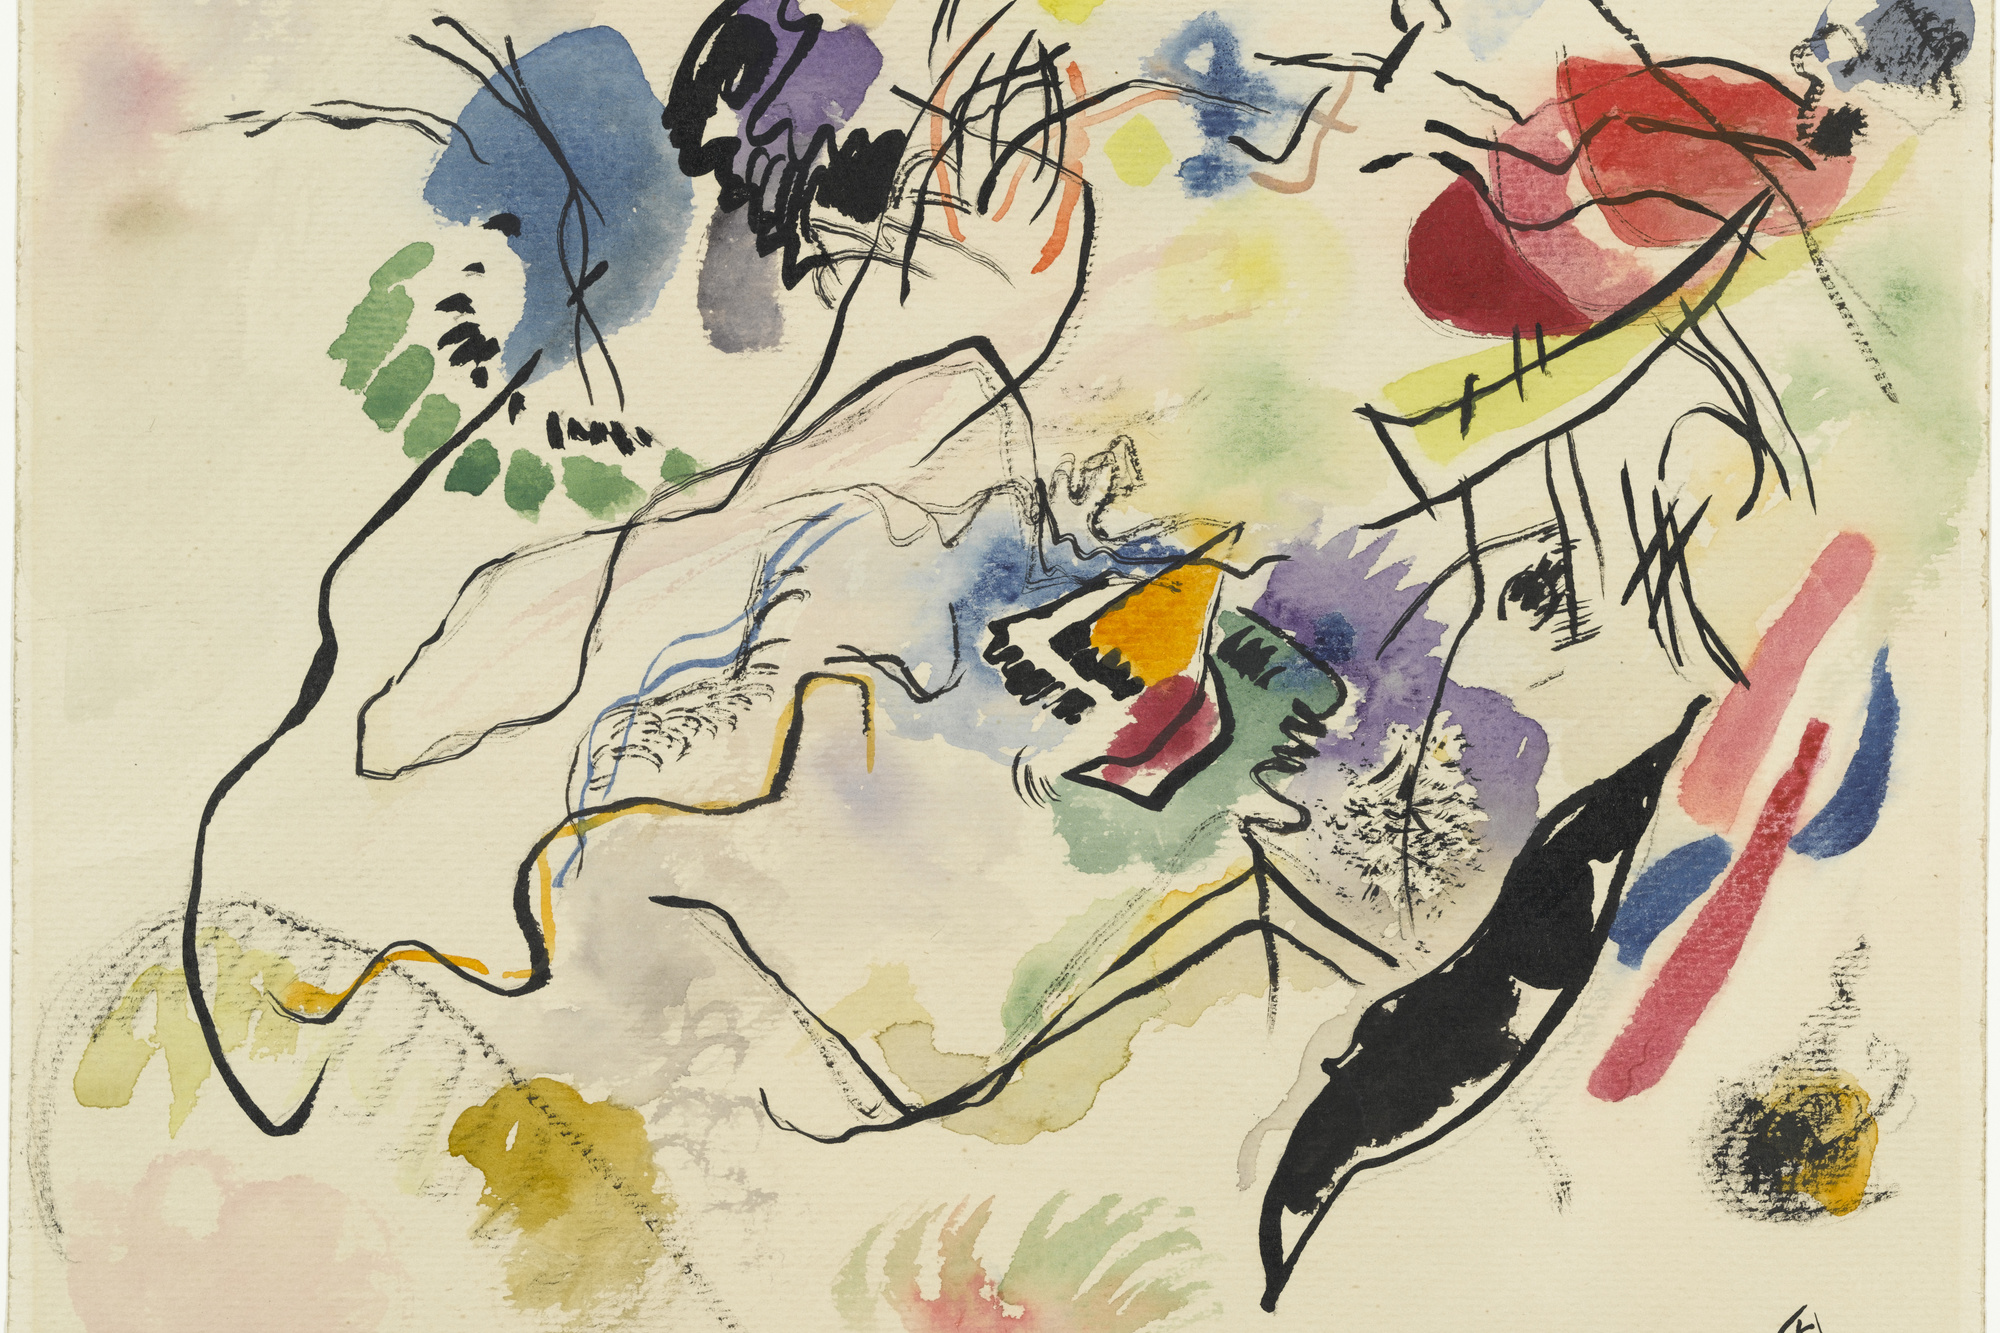 Vasily Kandinsky. Watercolor No. 14 (Aquarell No. 14). 1913. Watercolor and ink on paper, 9 3/8 × 12 3/8″ (23.8 × 31.4 cm). Katharine S. Dreier Bequest. © 2016 Artists Rights Society (ARS), New York / ADAGP, Paris. Photo: Robert Gerhardt